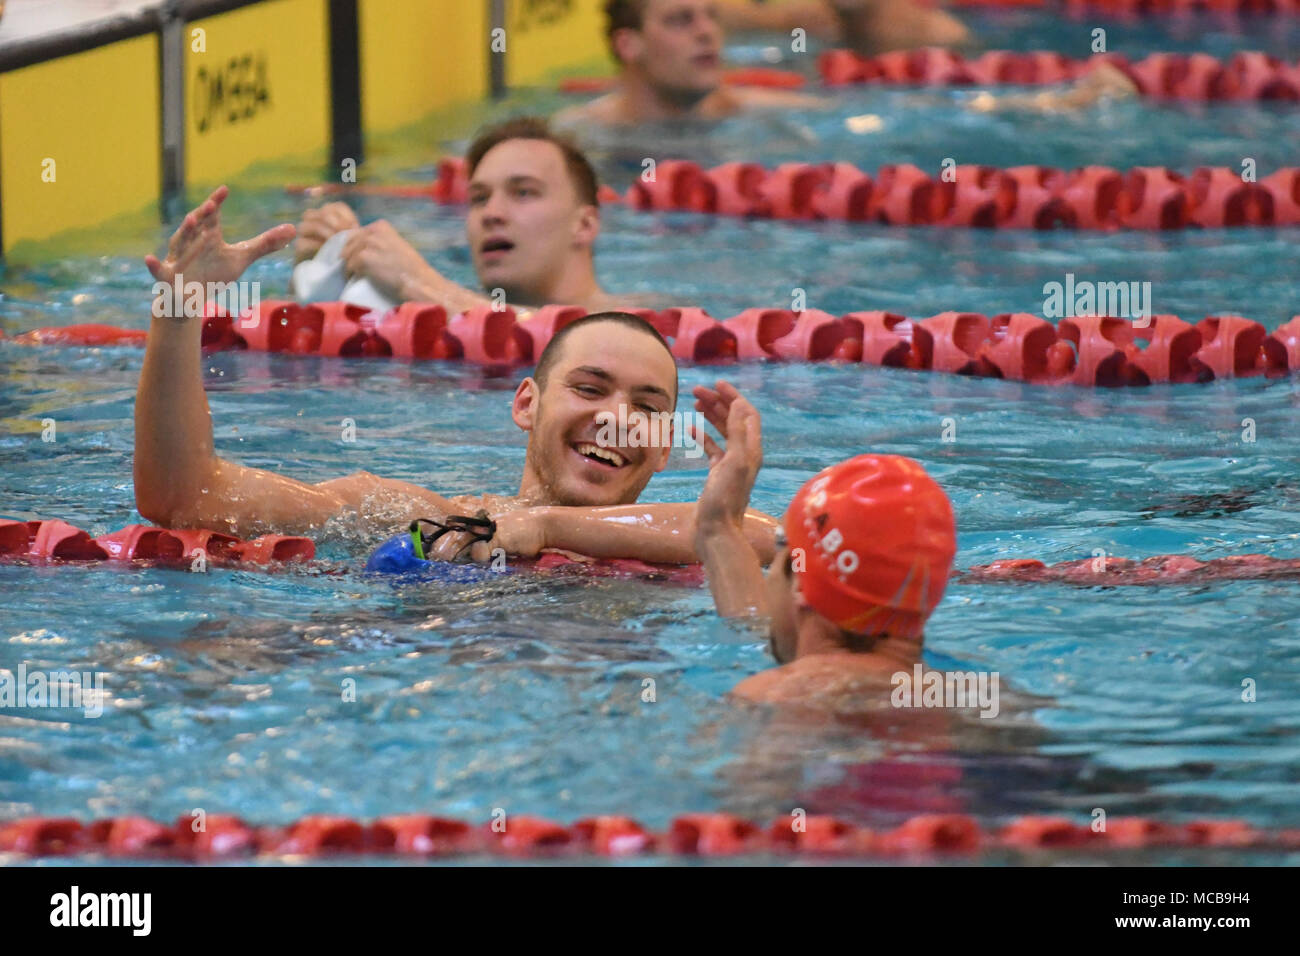 Bergen, Norway. 15th Apr, 2018. Niksja Stojkovski of Bærumsvømmerne Norway was stil happy with 2nd place in the mens 50m final with a 22.44 swim which earned him a new Norwegian national record on the distance. Credit: Kjell Eirik Irgens Henanger/Alamy Live News - Stock Image